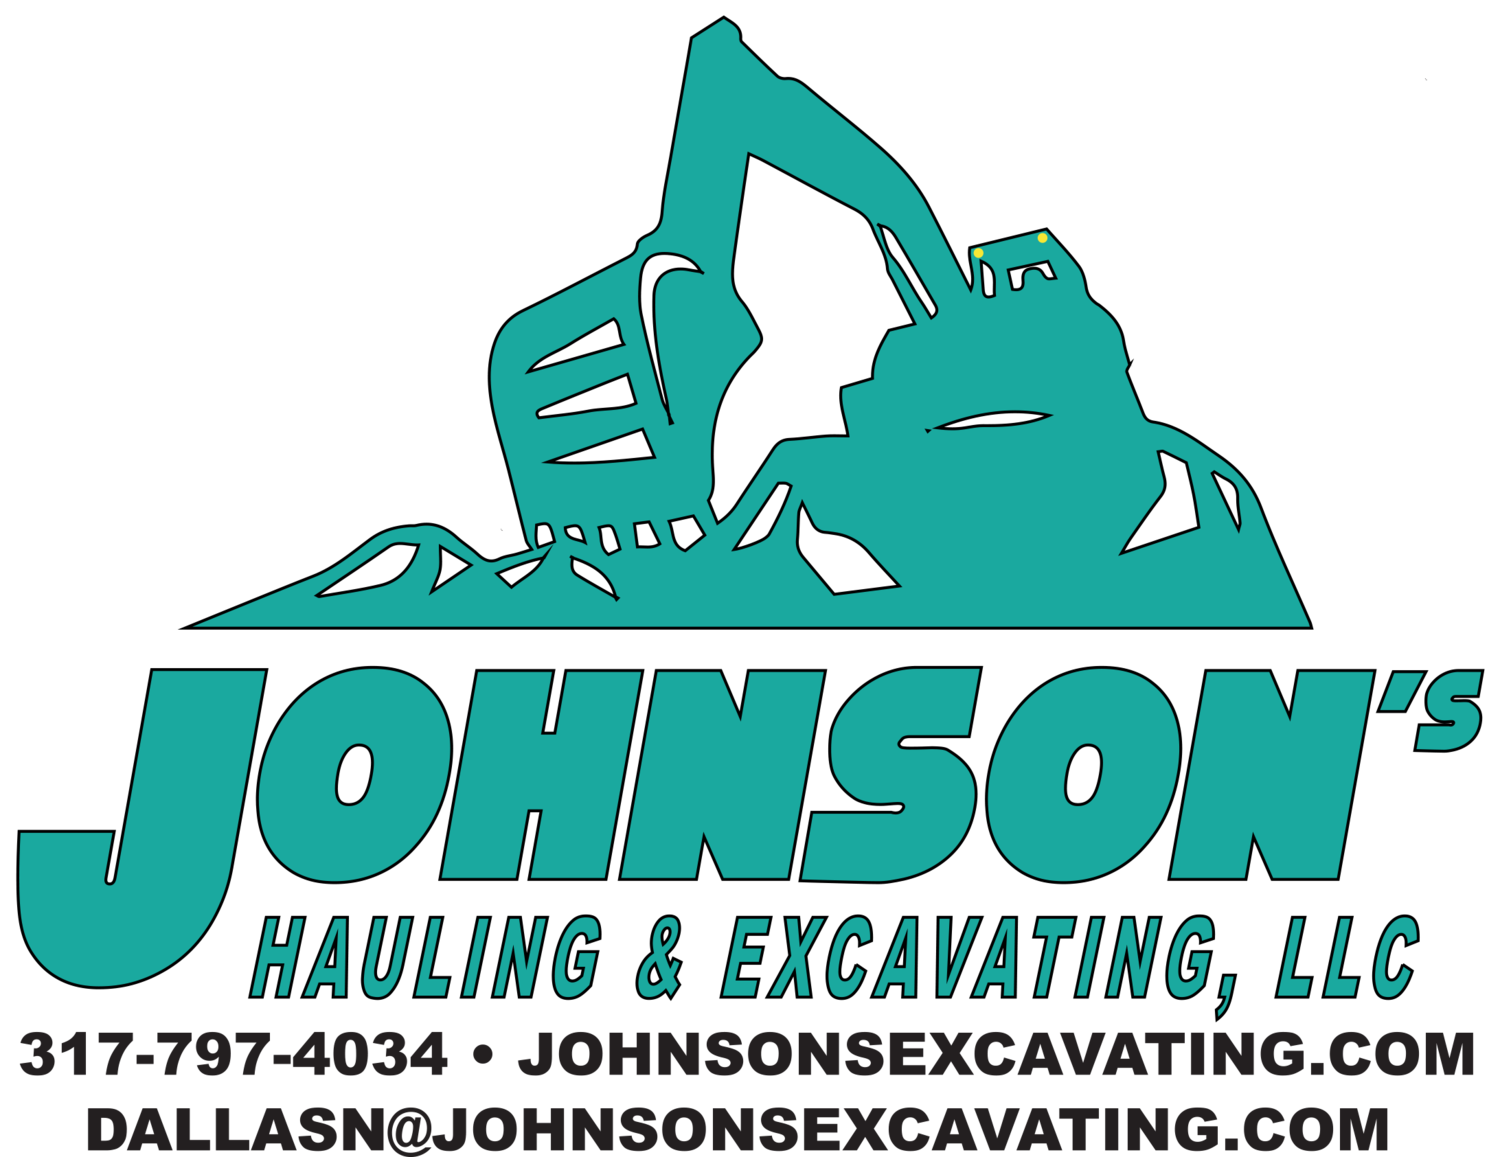 Johnson's Hauling & Excavating, LLC